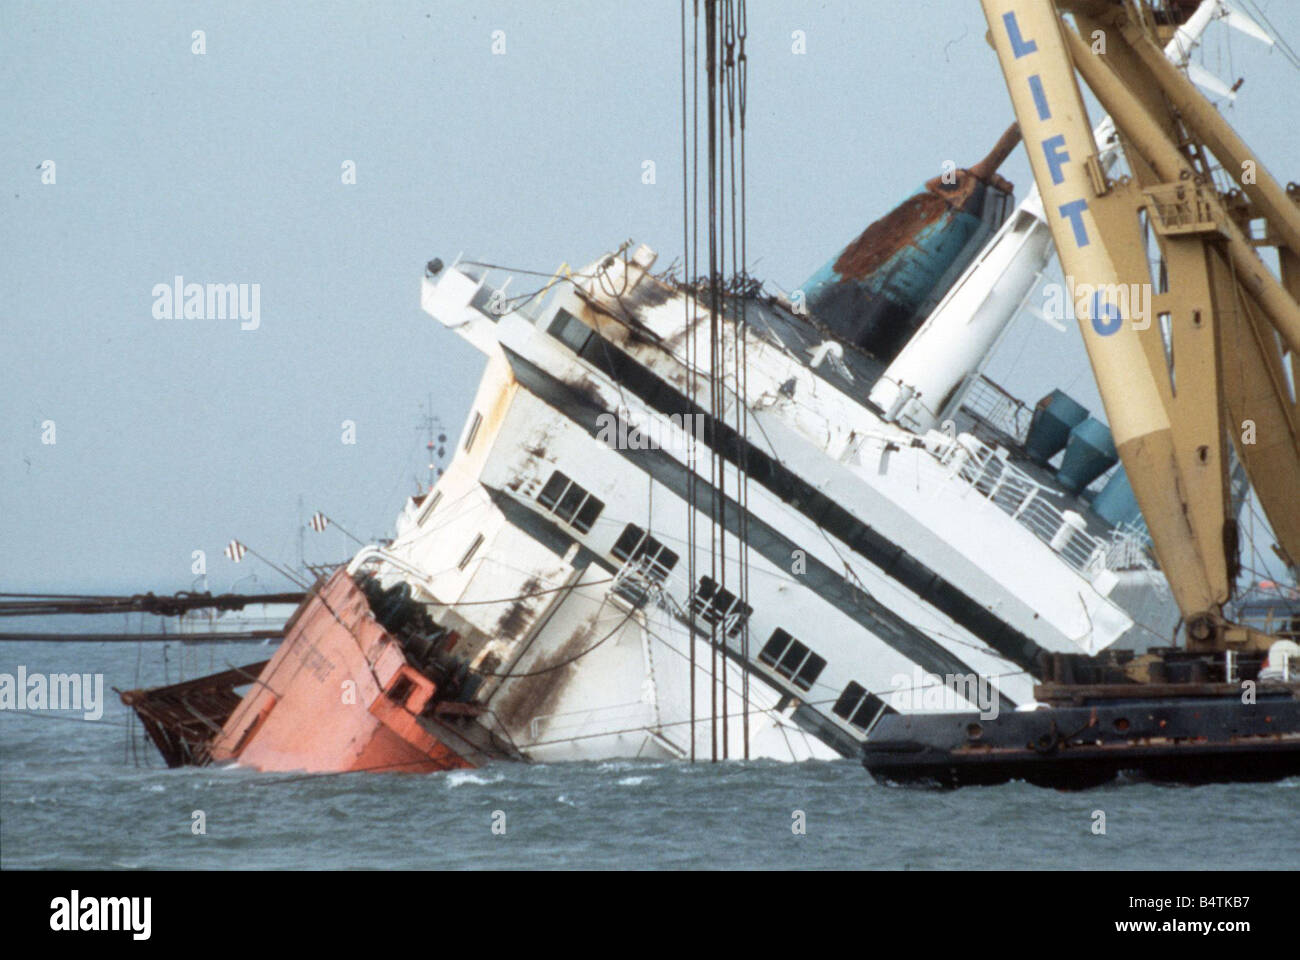 Raising the Herald Of Free Enterprise off Zeebrugge 1987 ...